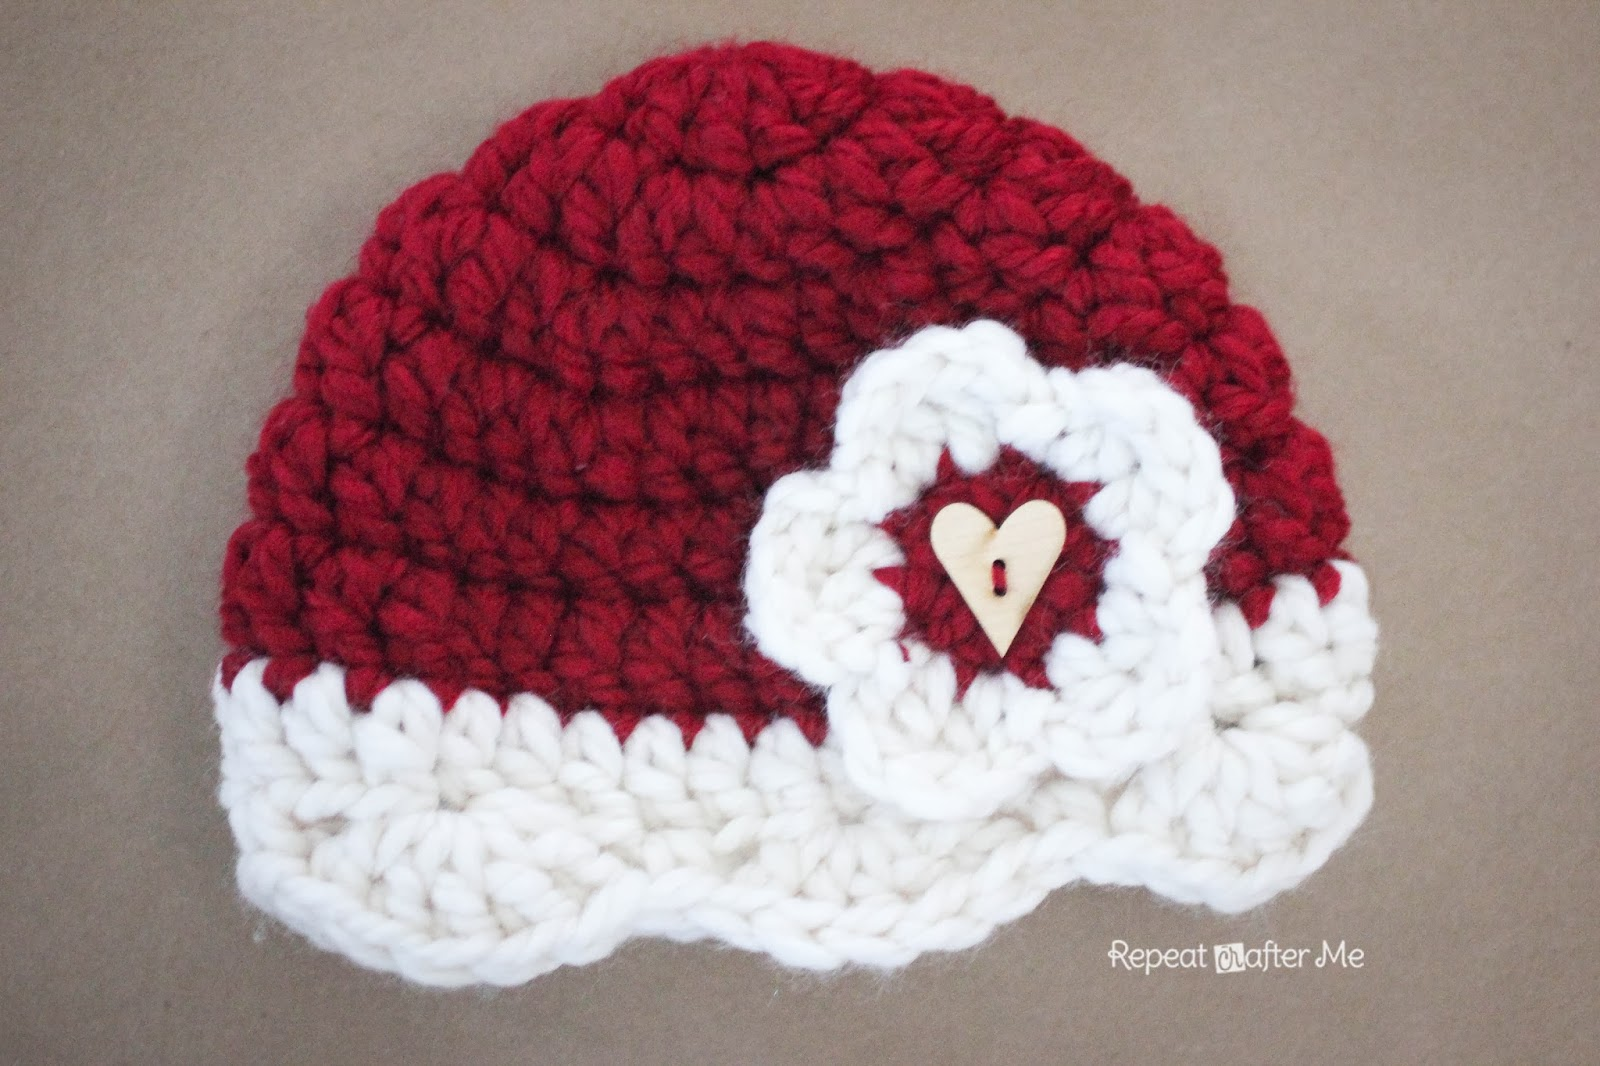 b208f650b3 Crochet Valentine Hat Pattern - Repeat Crafter Me